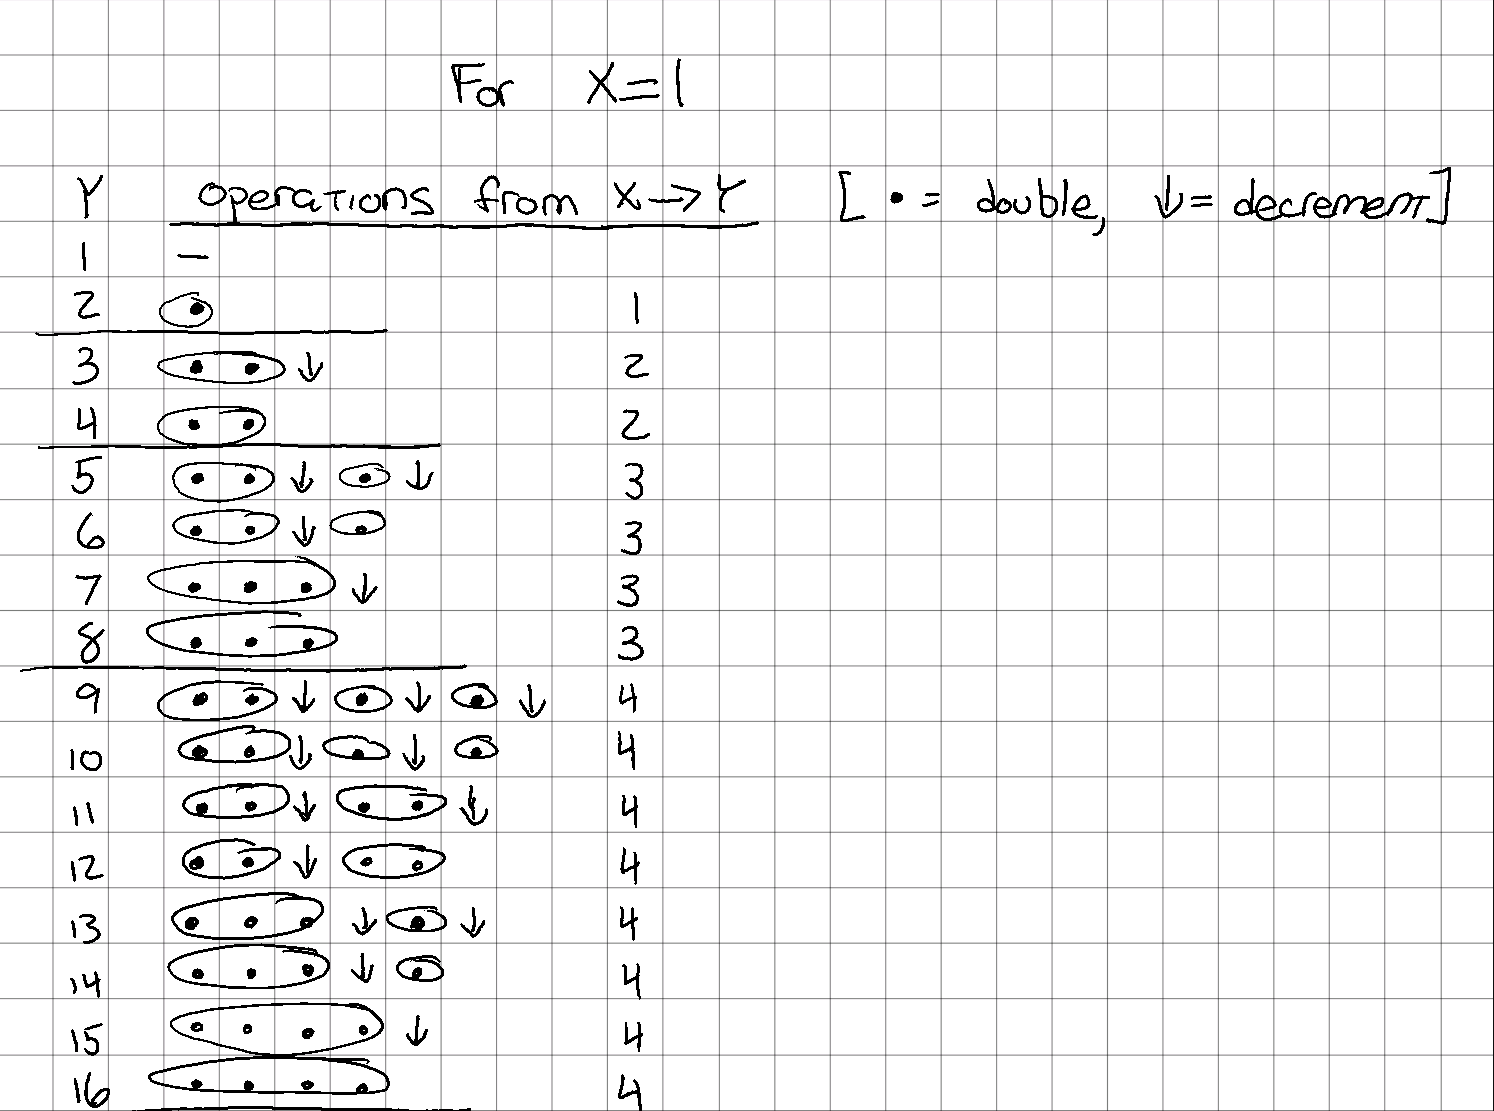 Same number of double operations in each 'group'